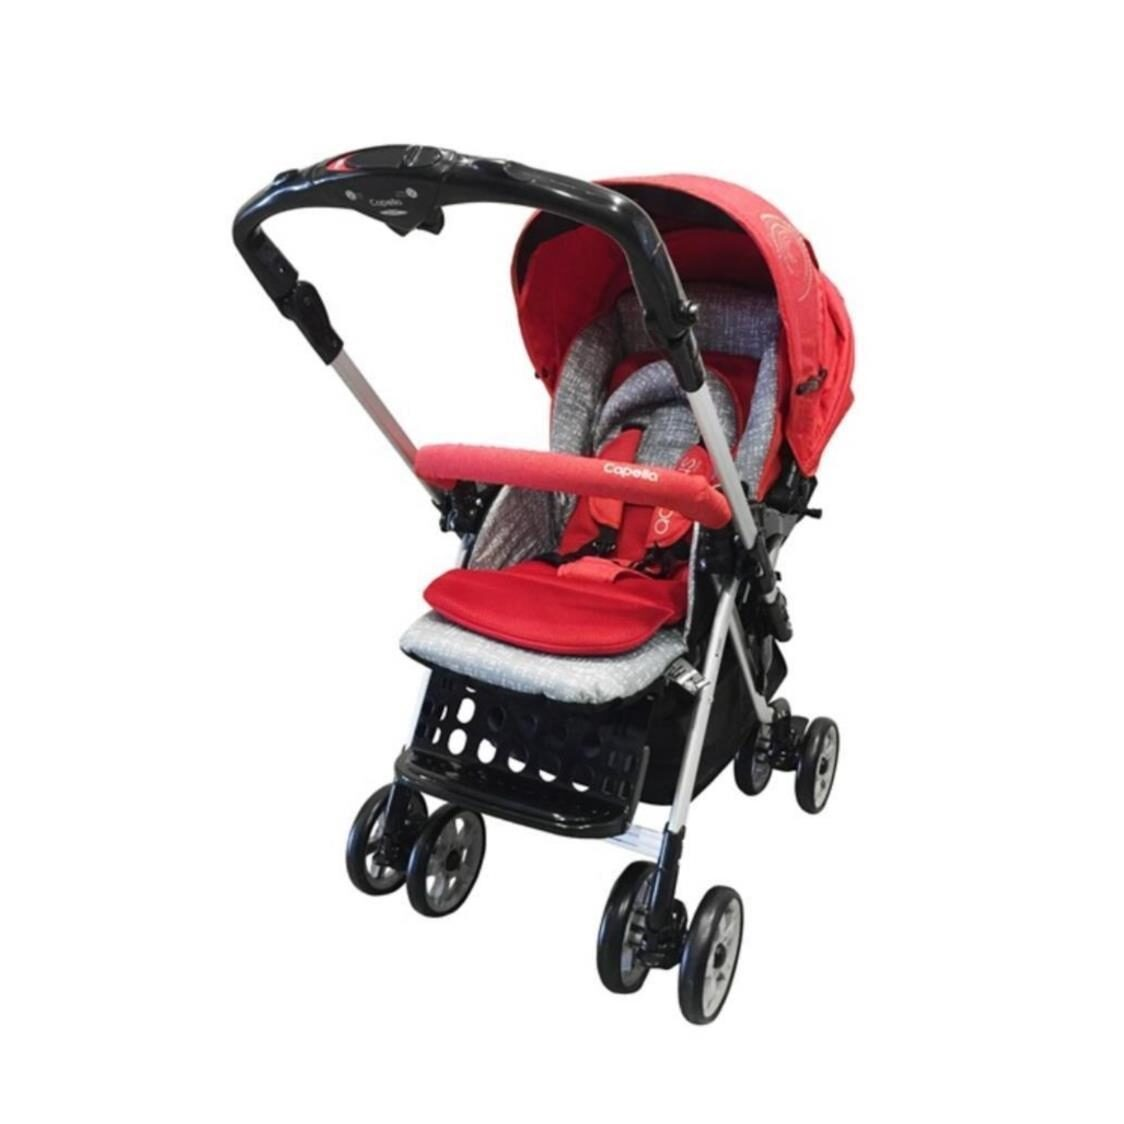 Adonis Travel System Stroller Red Weight 860 kg